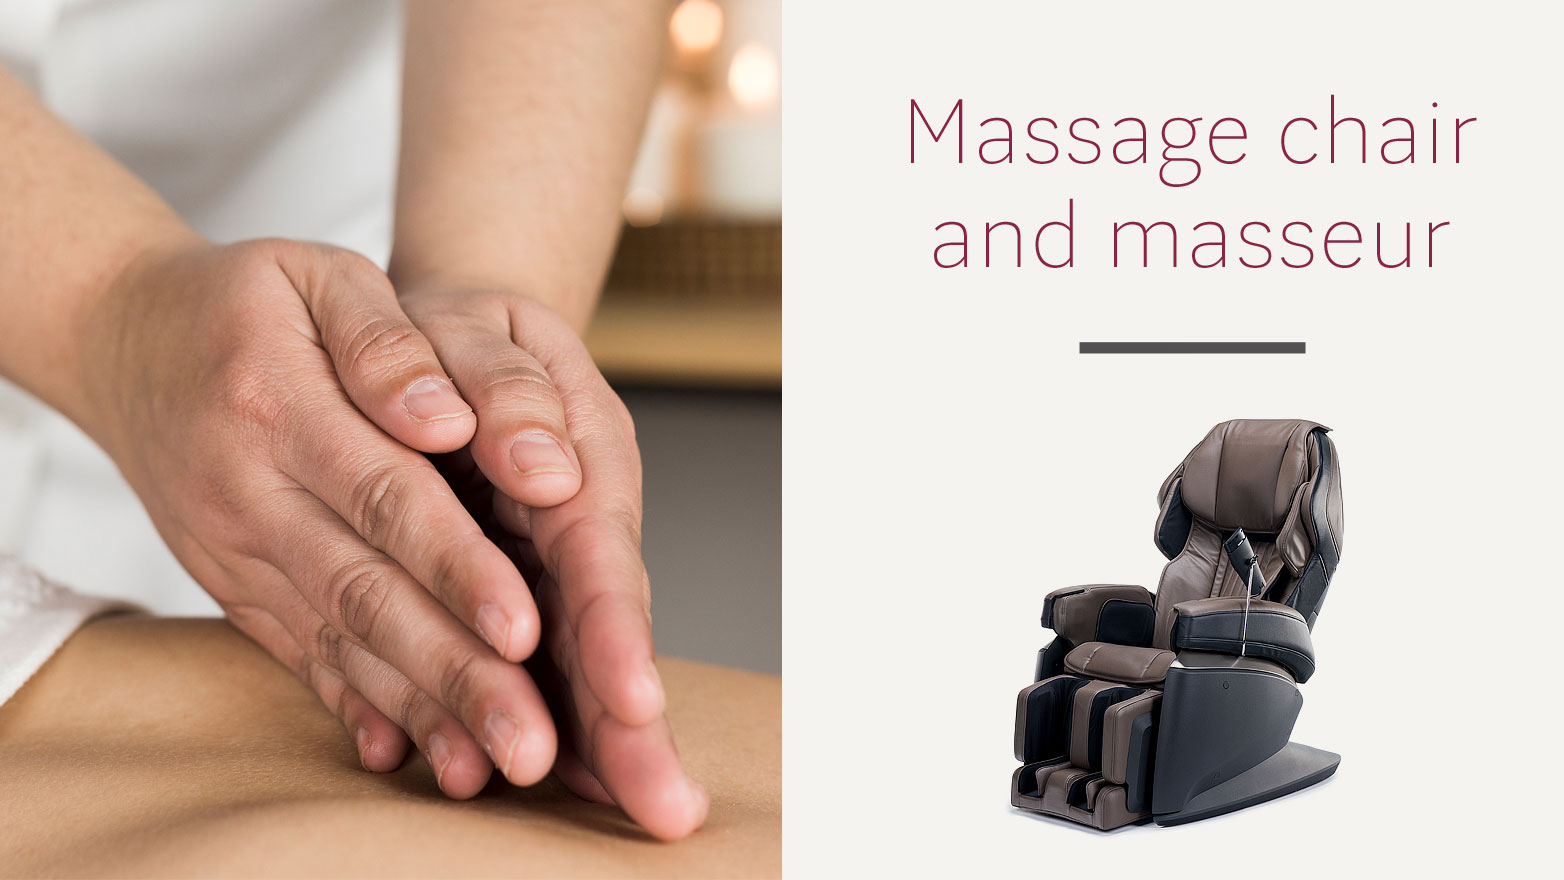 Massage chair and massage therapist